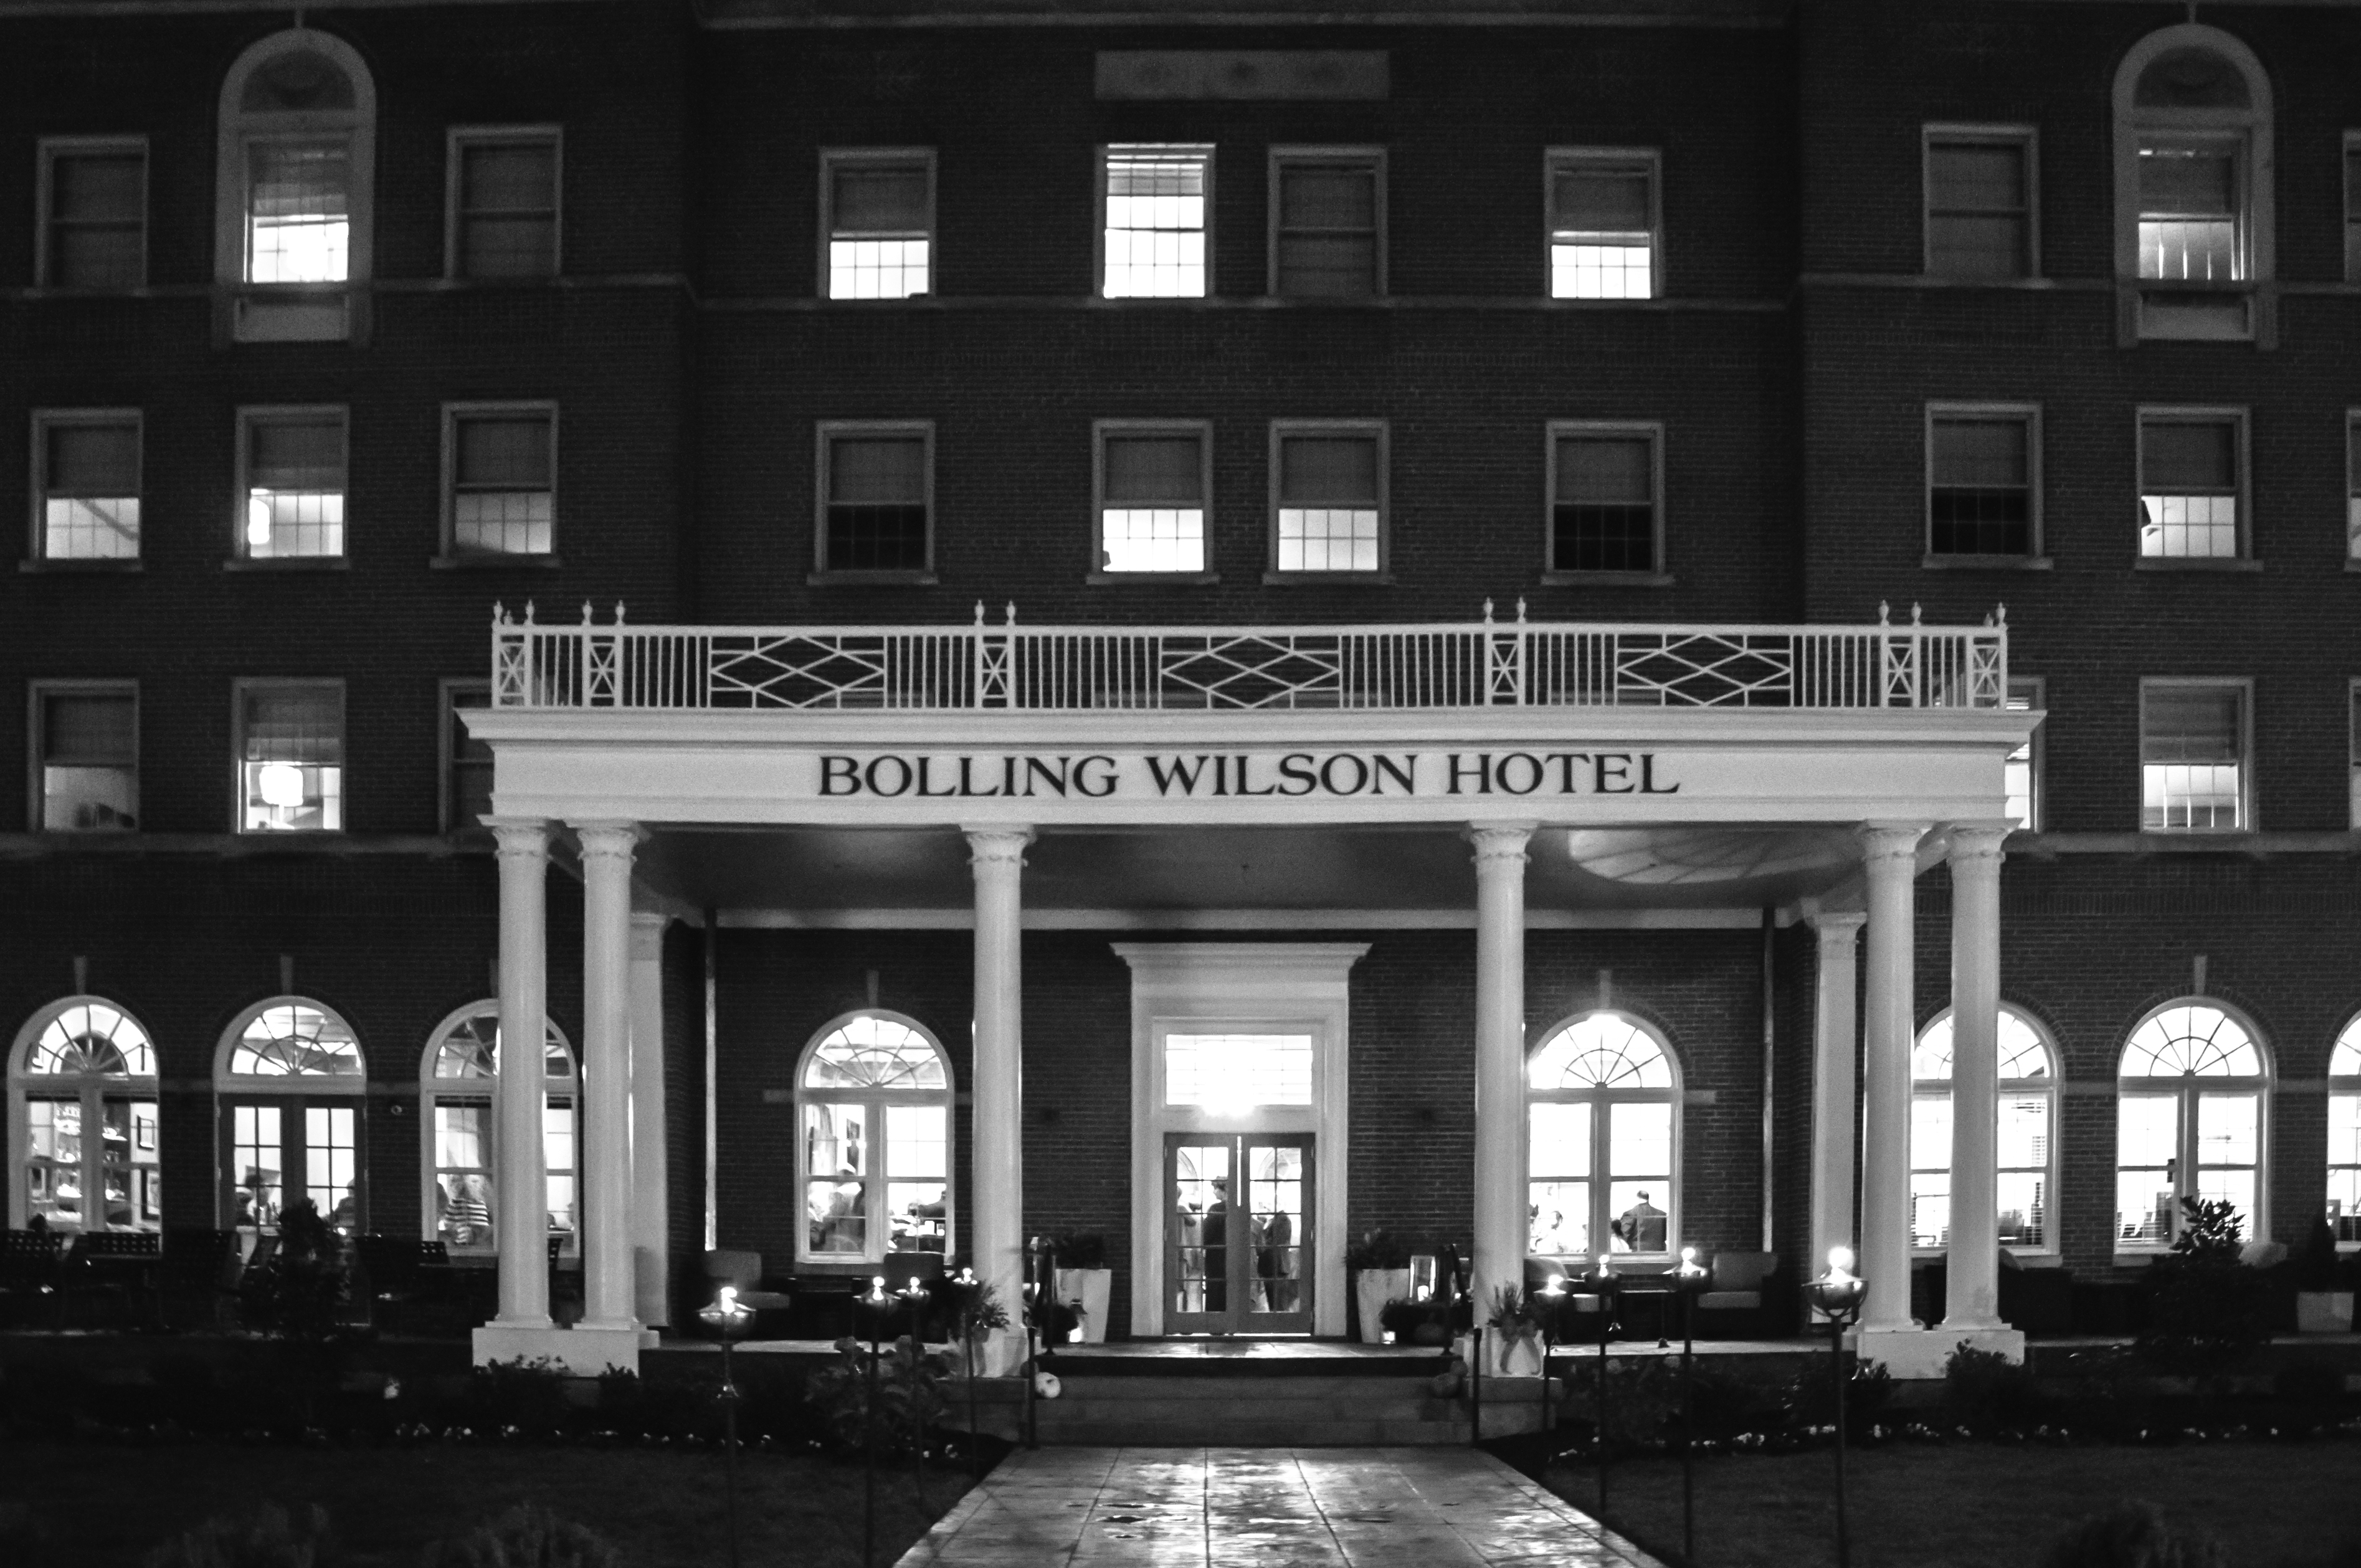 The Bolling Wilson Hotel